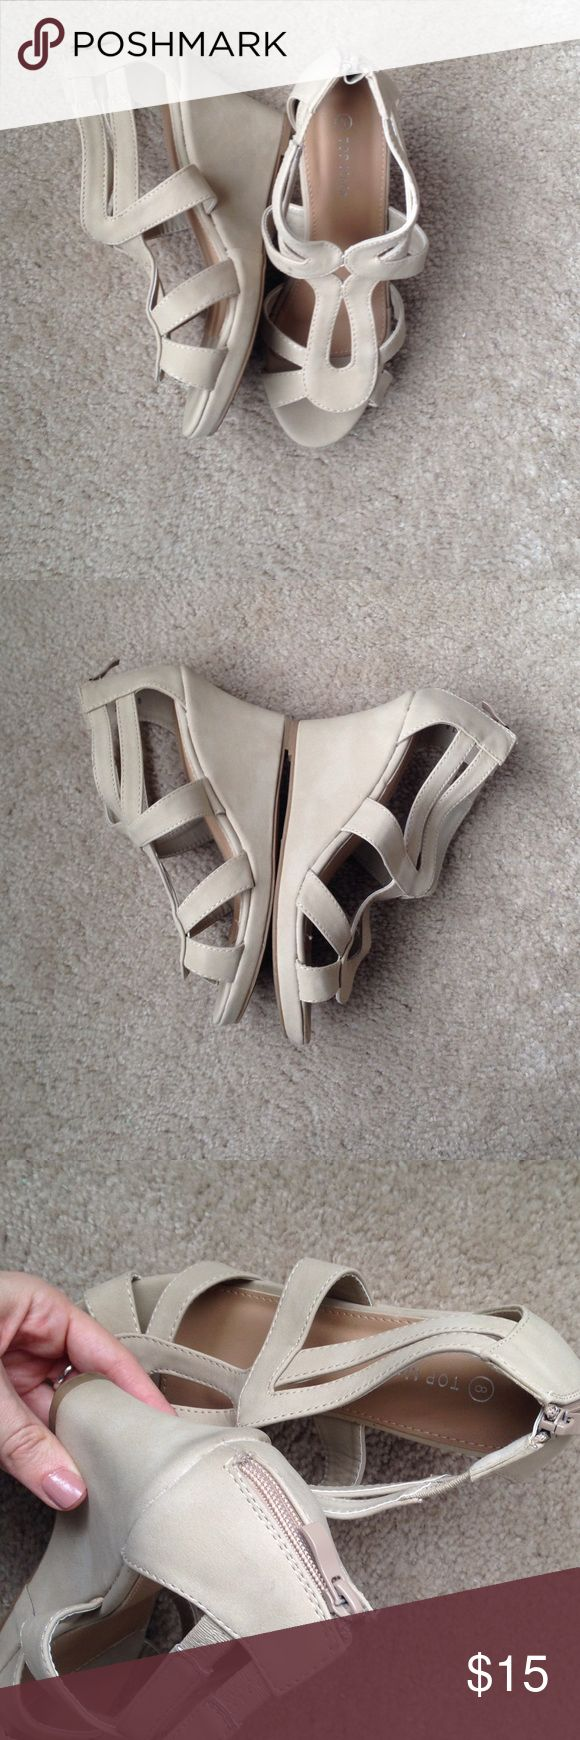 "Top Moda Nude Zip Up Sandal Wedges Size 8 Worn once to a bridal shower. Nude Zip back wedges with cute cut out design on front. 3-3.5"" heel. Minimal wear. One shoe has slight glue from factory on the outside. Not Lulus, but for exposure. Top moda brand.                                                                 As a buyer, please know your size and ask questions before purchasing. I am not responsible for items that do not fit or if you are unfamiliar with you sizing in the brand…"